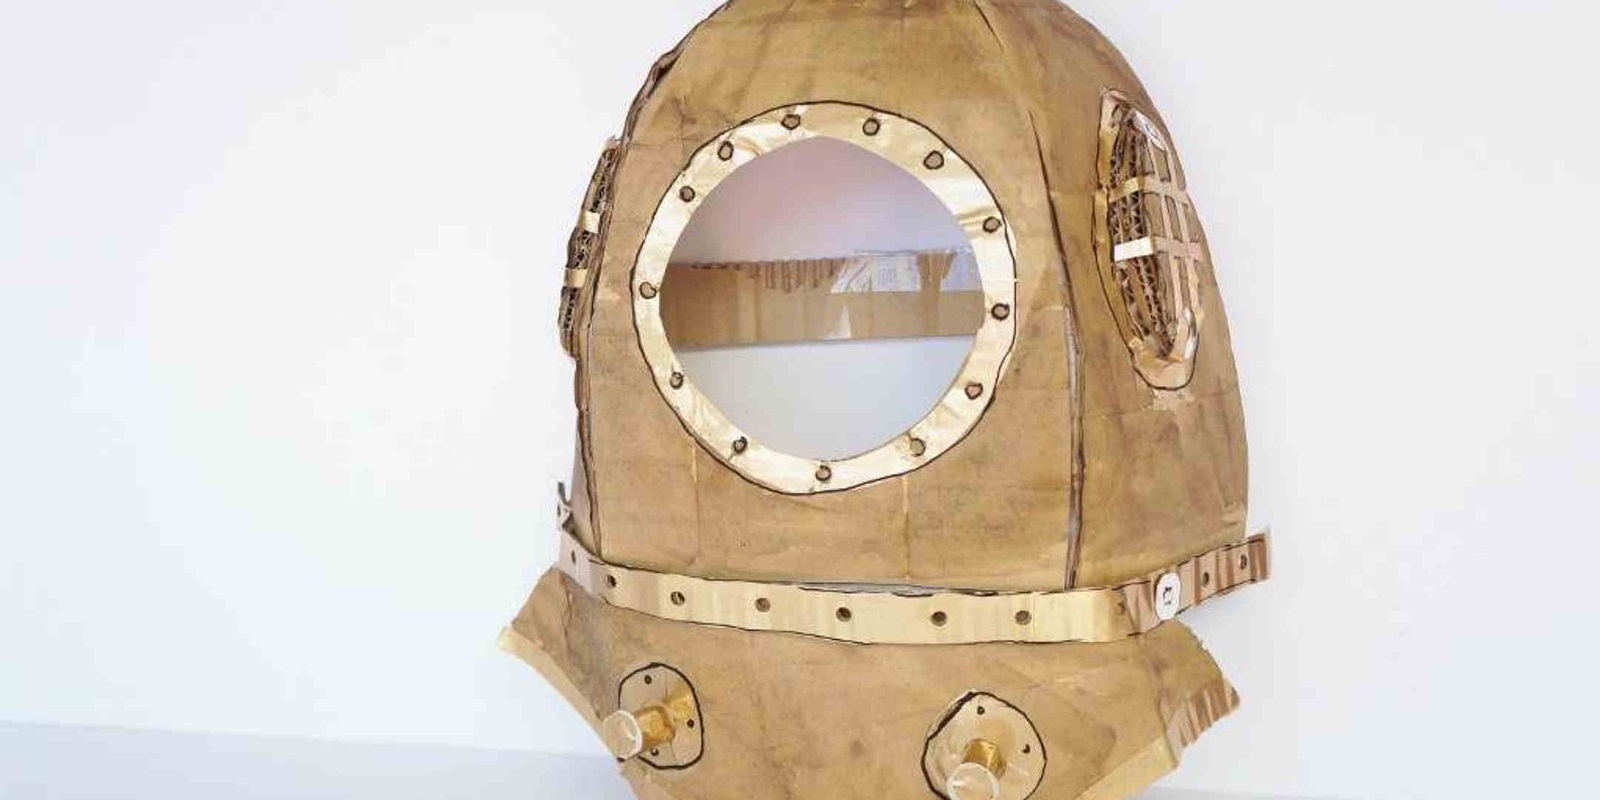 How to make an easy deep sea diver costume